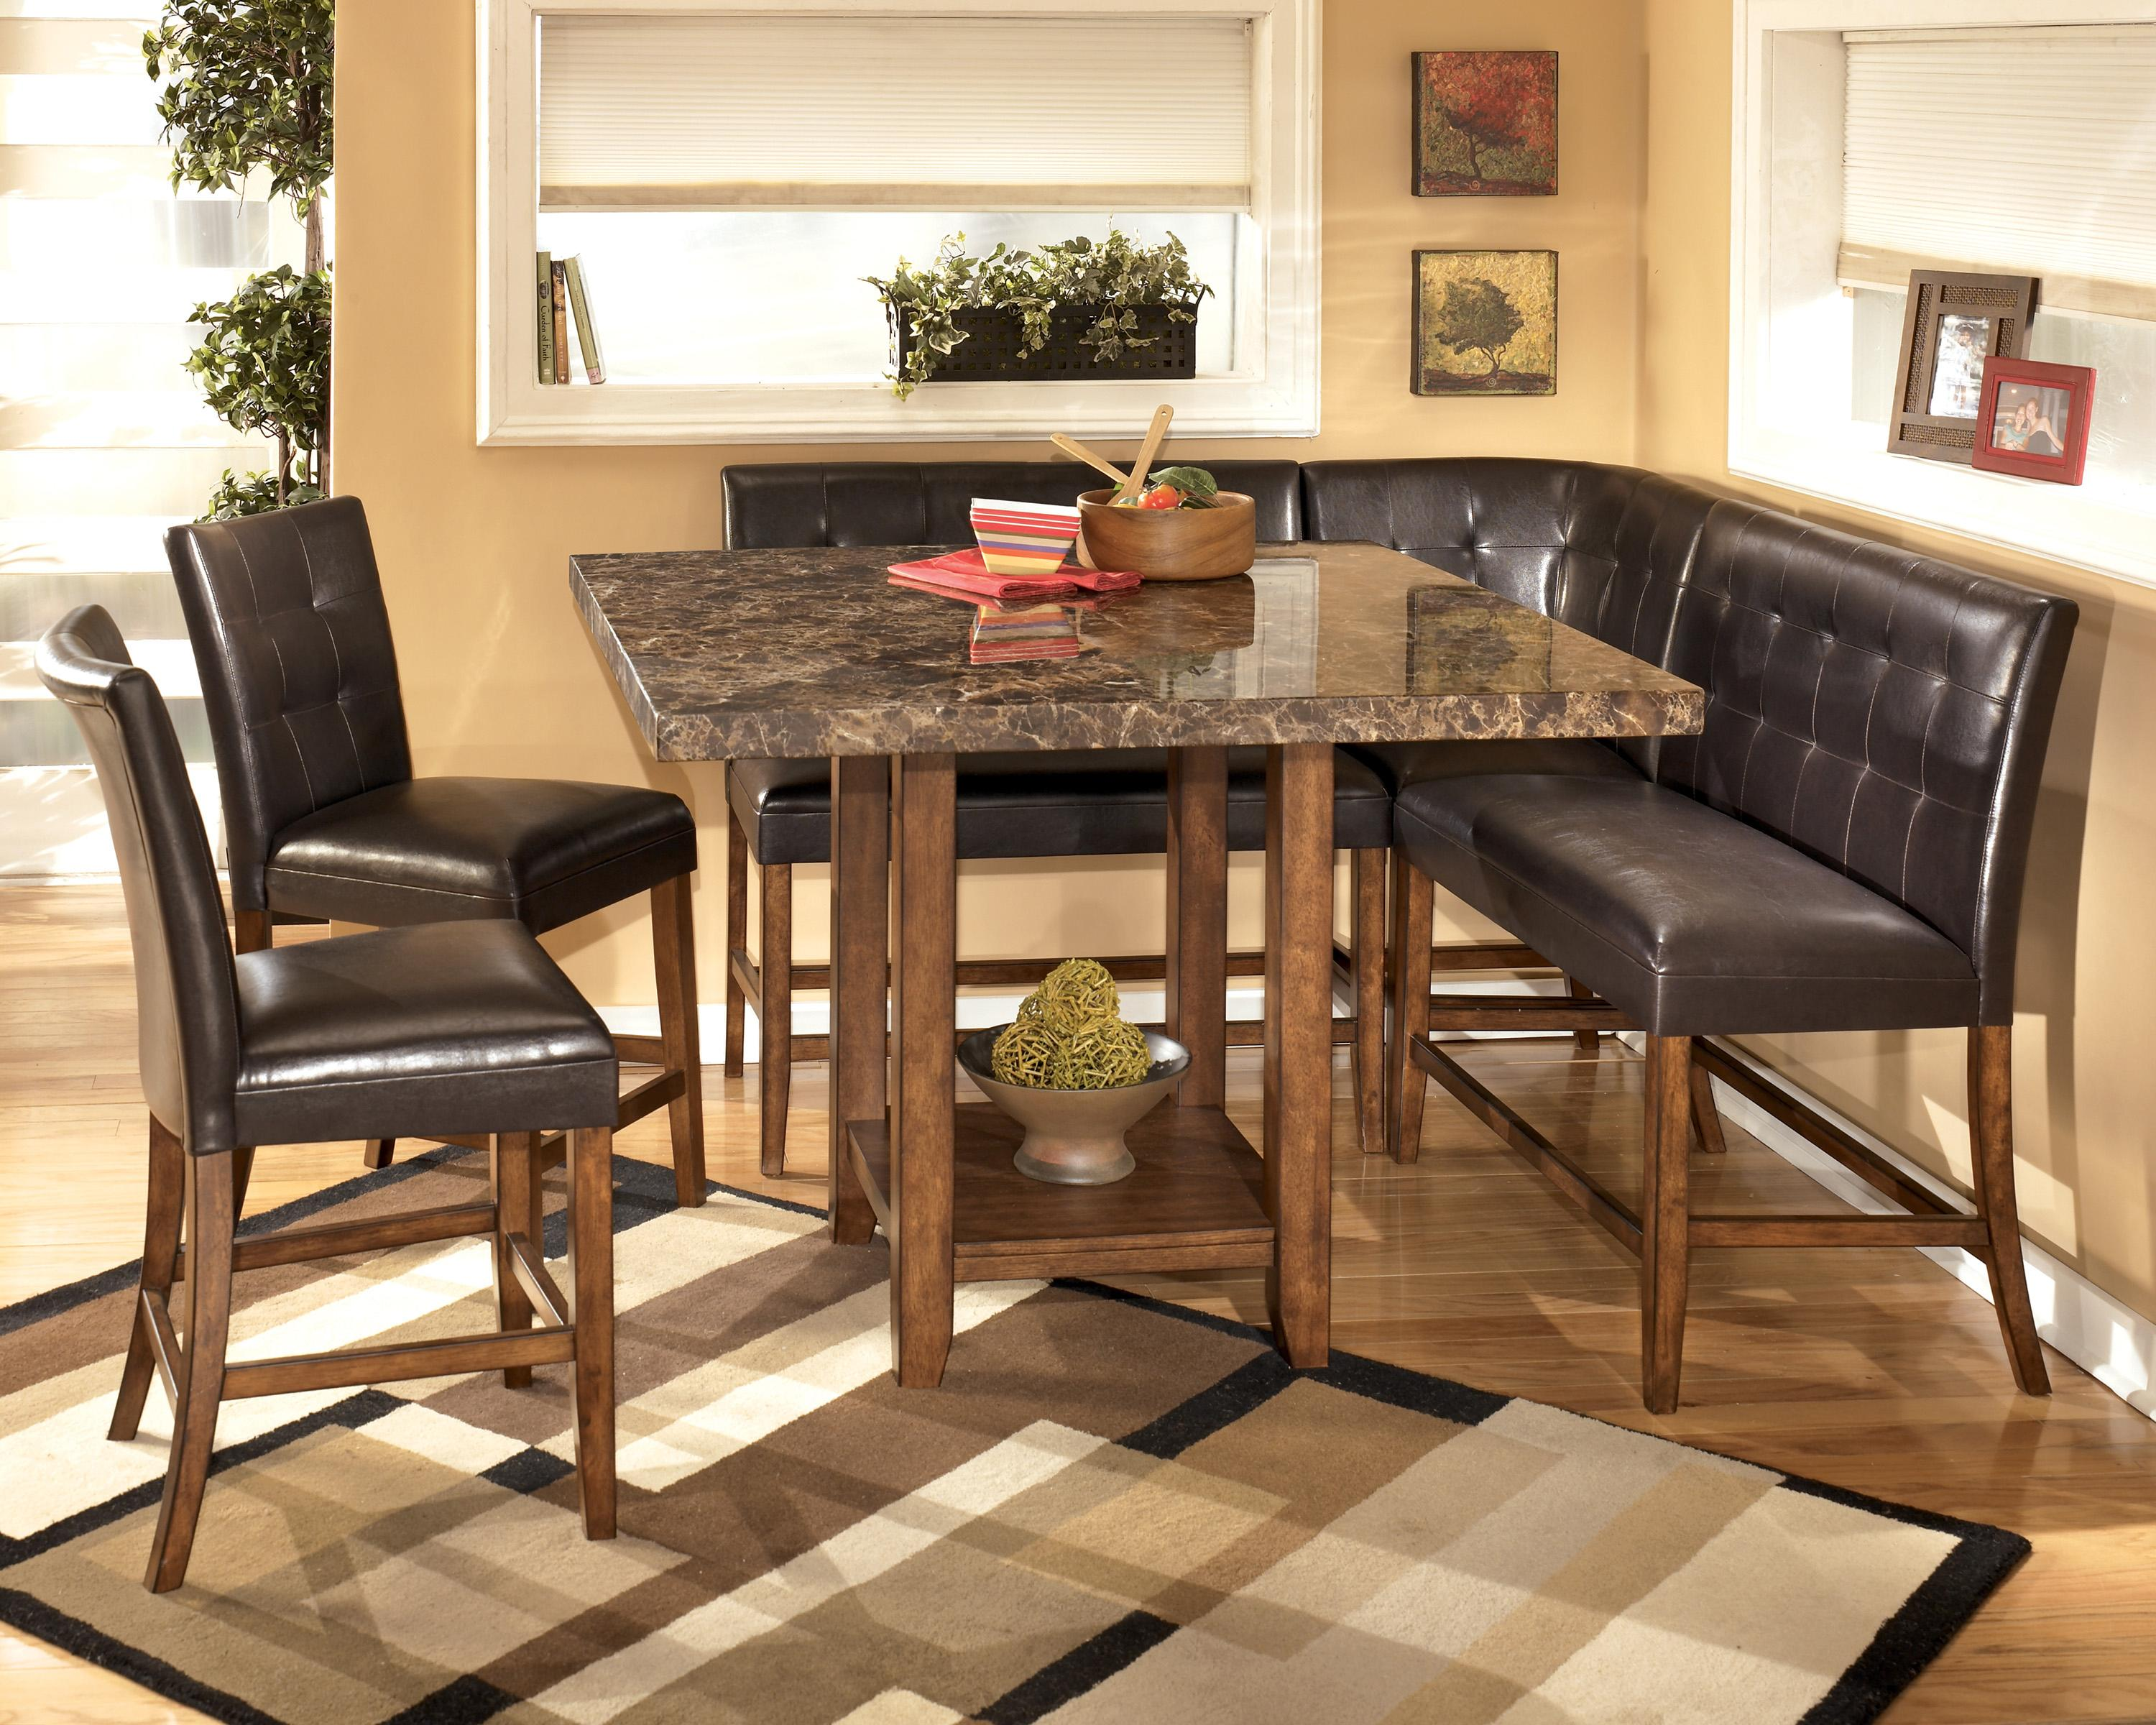 Del Sol As Lacey D328 323 Upholstered Double Bar Stool